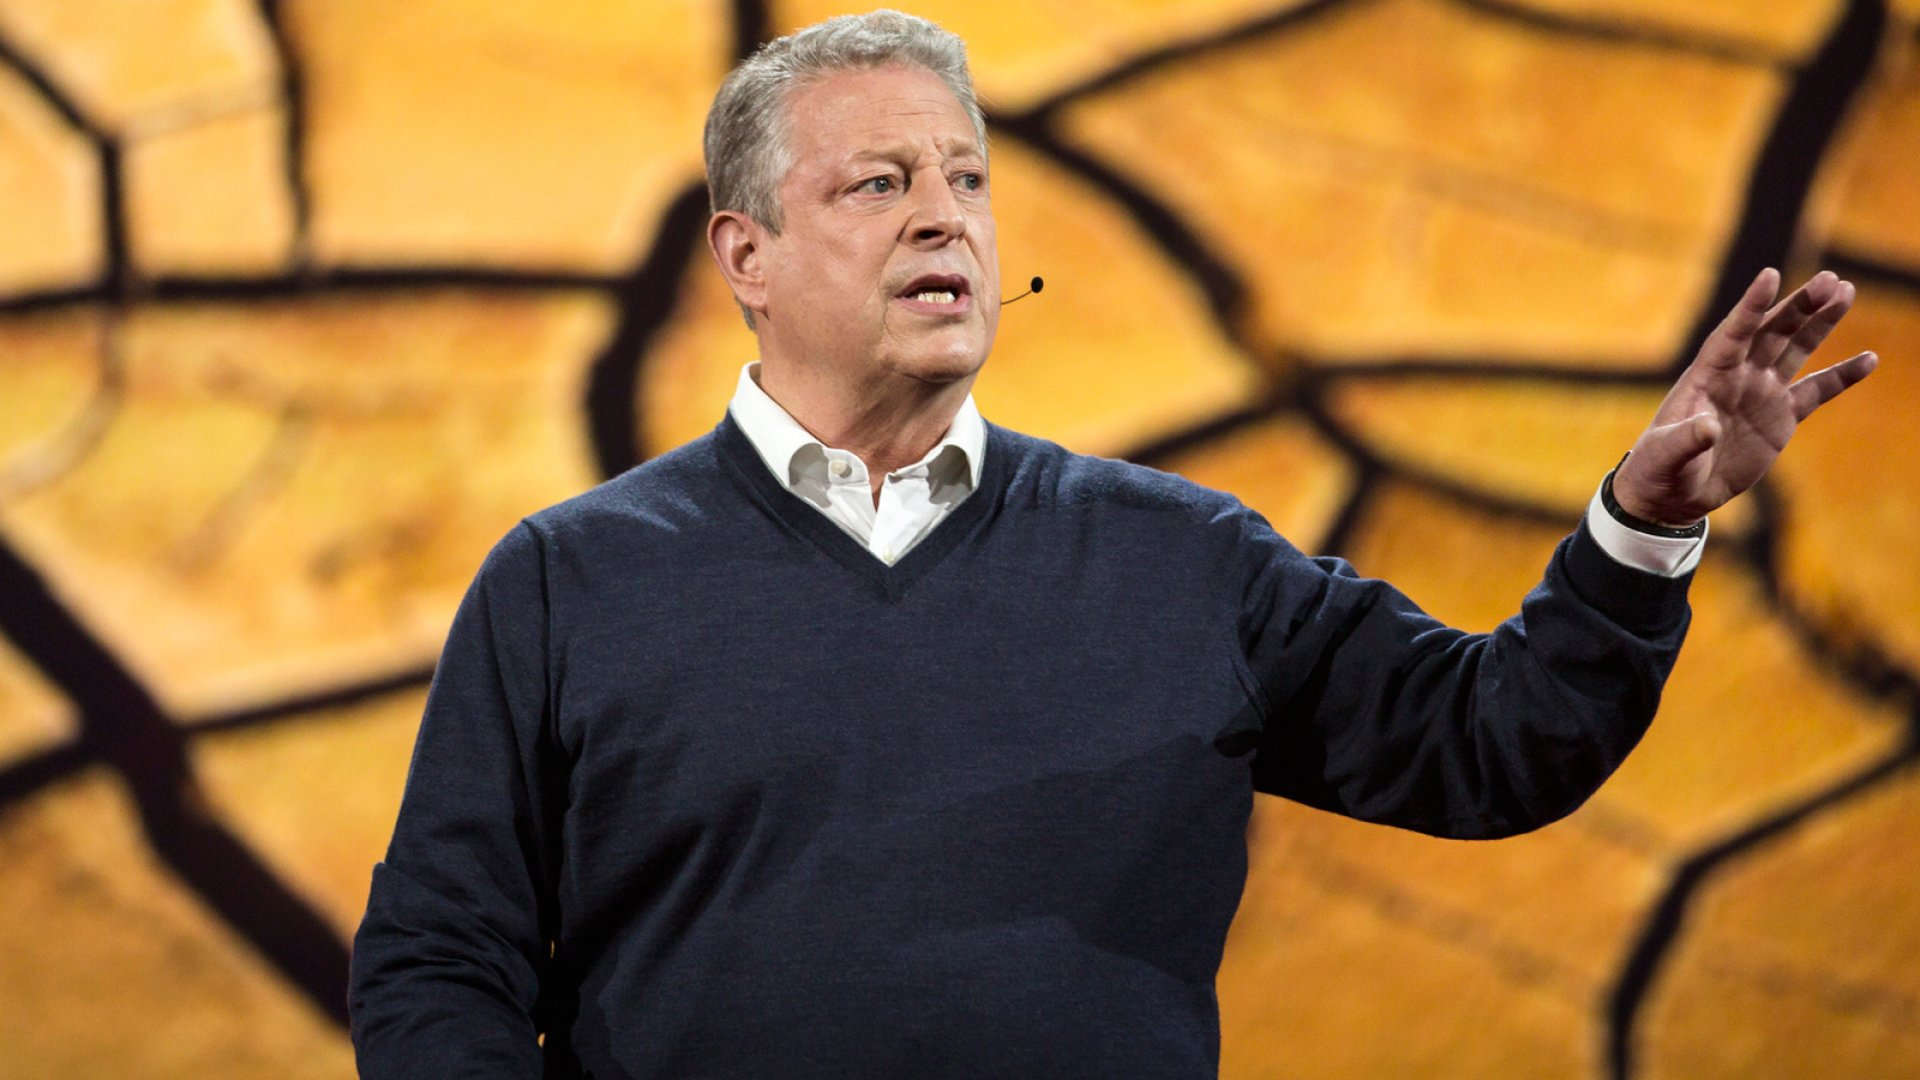 At TED, Al Gore Shares 3 Secrets of the New Climate Crisis Economy